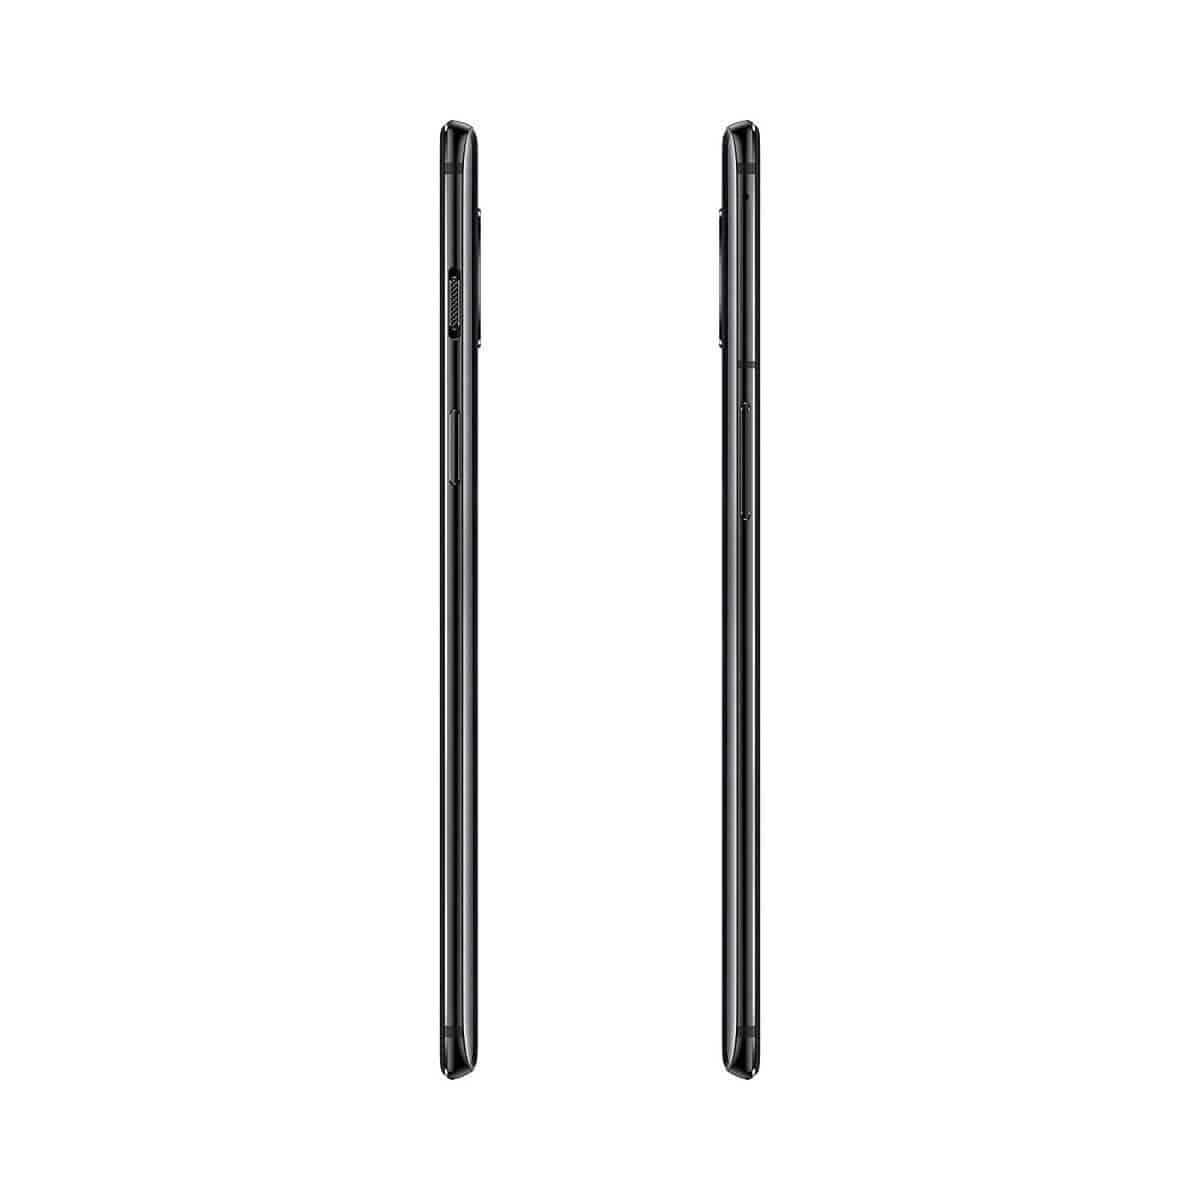 OnePlus 6 Mirror Black 2